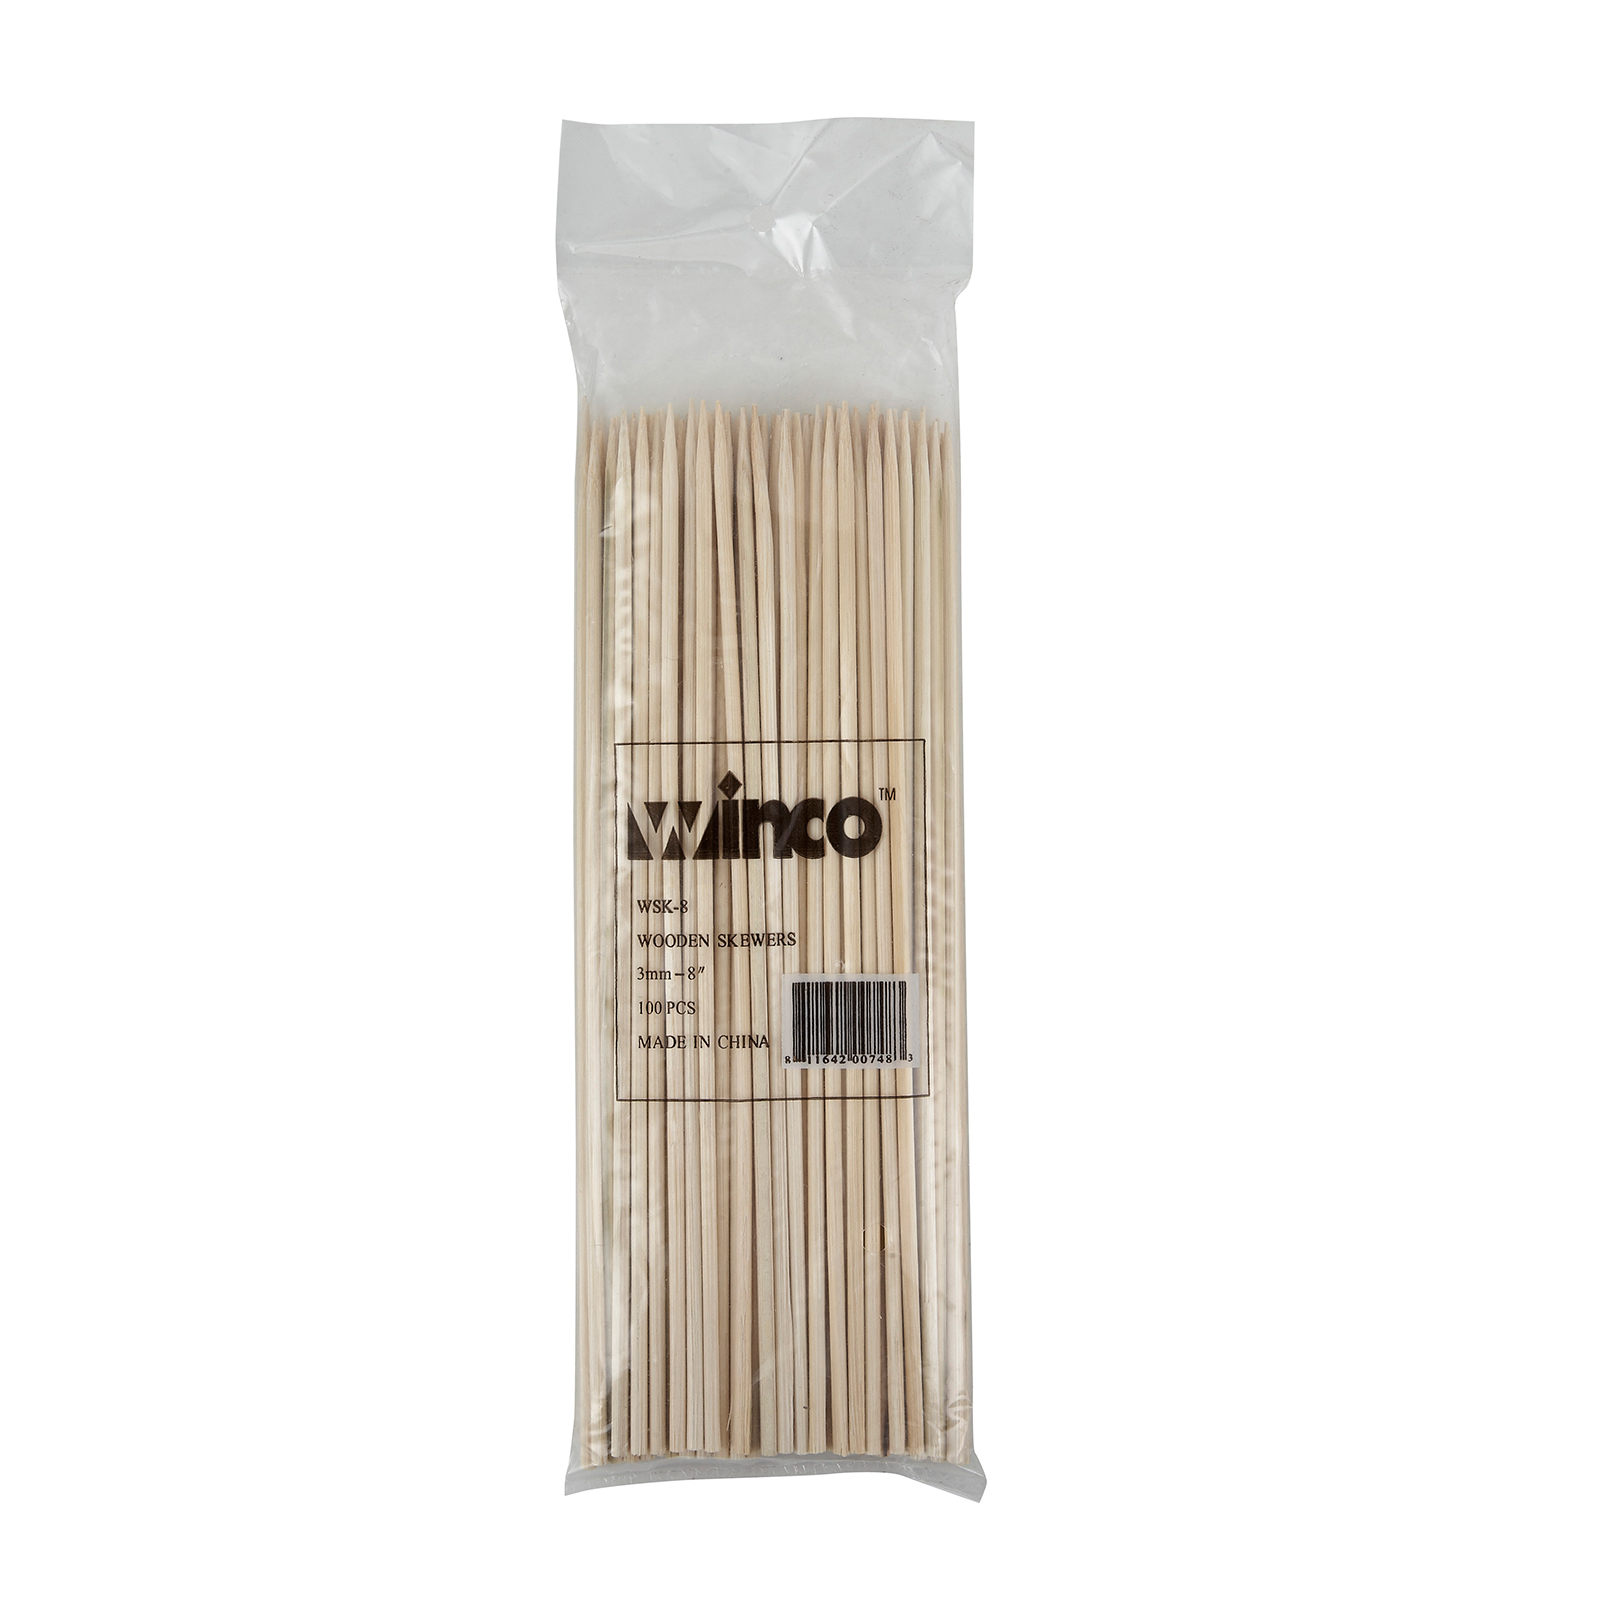 Winco WSK-08 skewers, wood